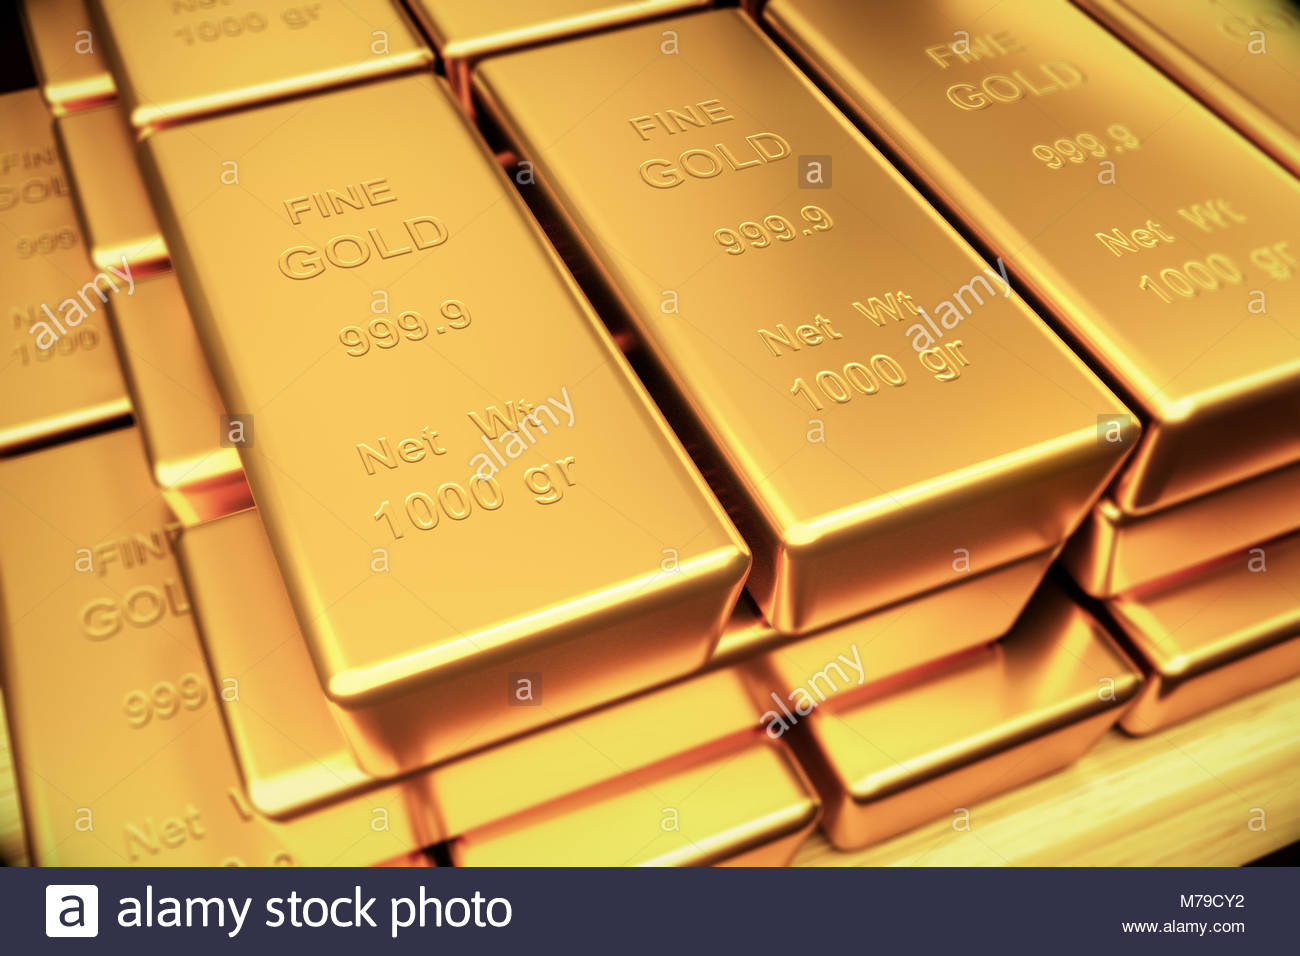 Gold Bullion A Yellow Precious Metal The Chemical Element Of Atomic